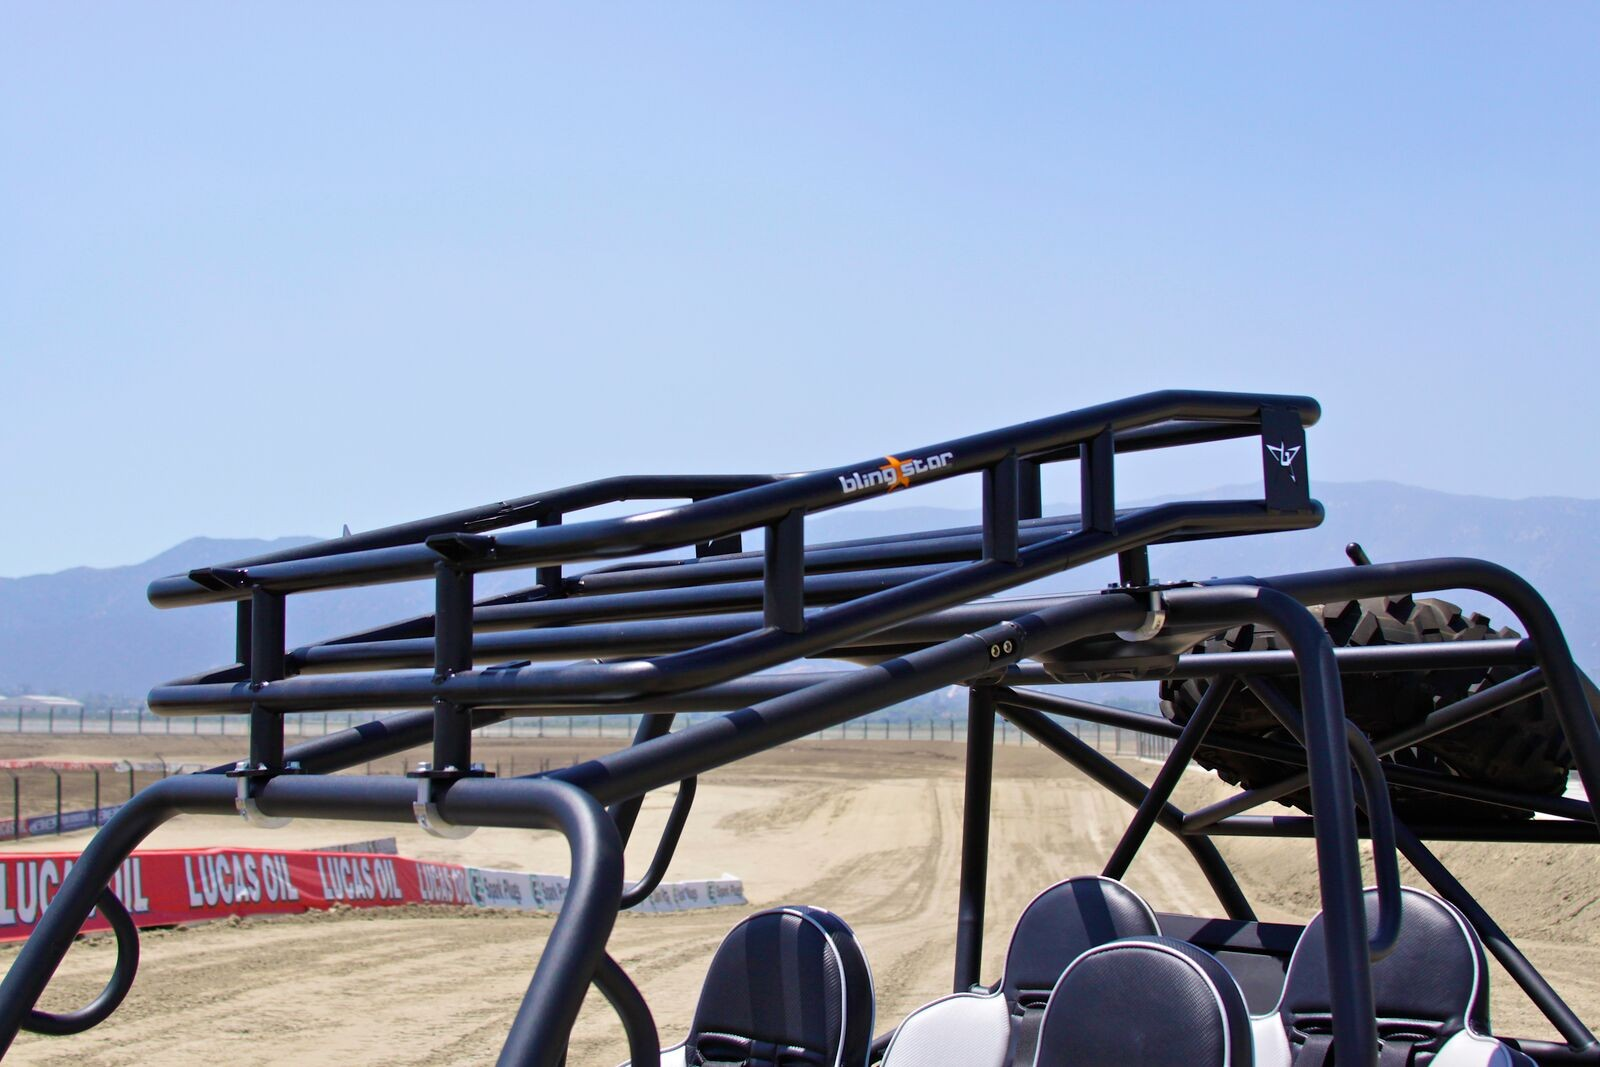 Polaris RZR S800 & XP900 4 Suicide Doors